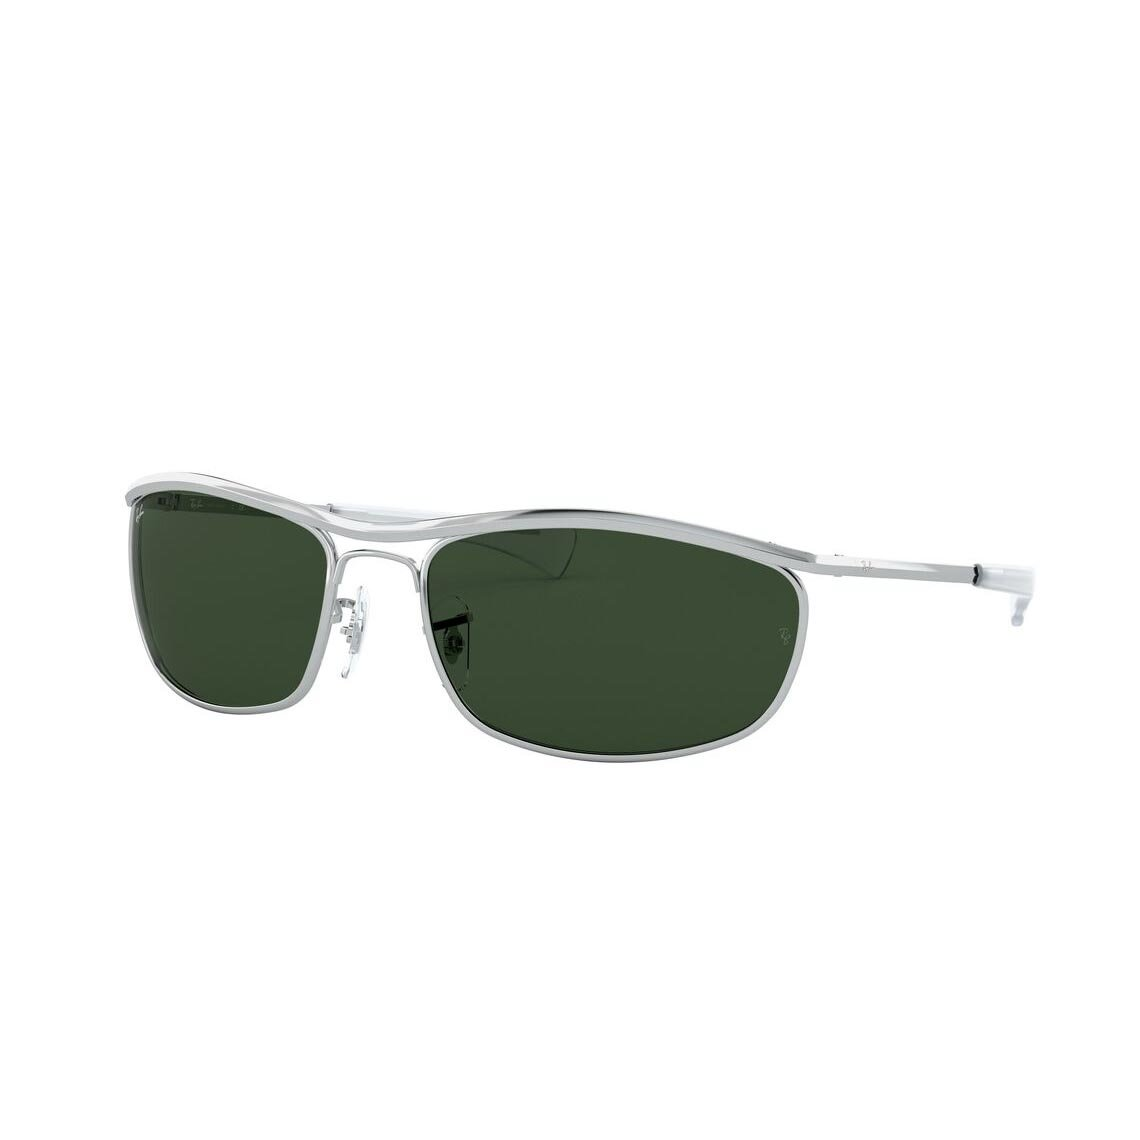 Ray-Ban Olympian I Deluxe RB3119M 003/31 6218